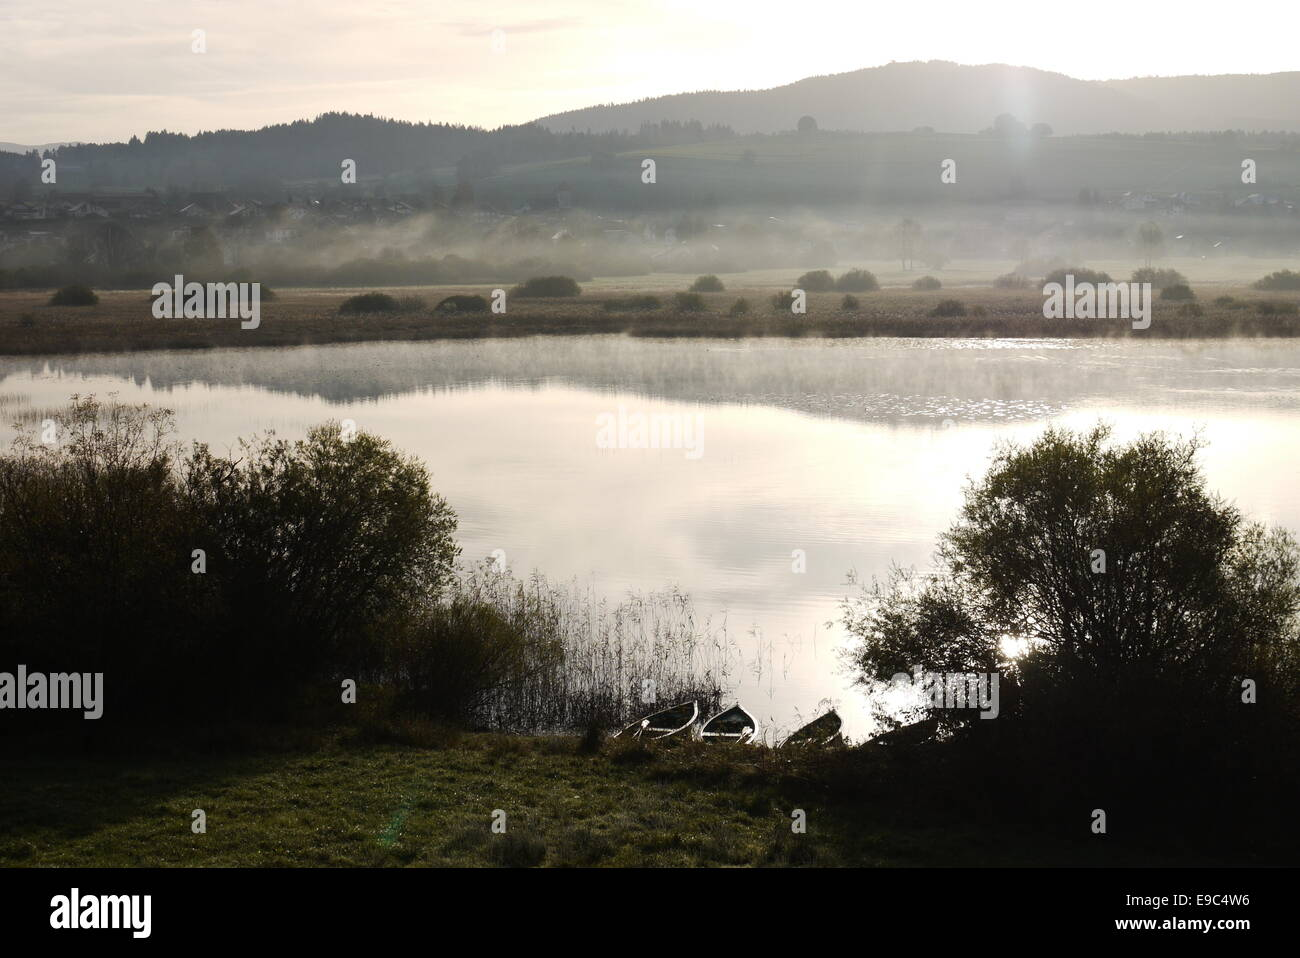 Boats Silence silent morning scenery with fog and mist at Lac de Remoray near Lac de Saint Point, Pontarlier, France Stock Photo